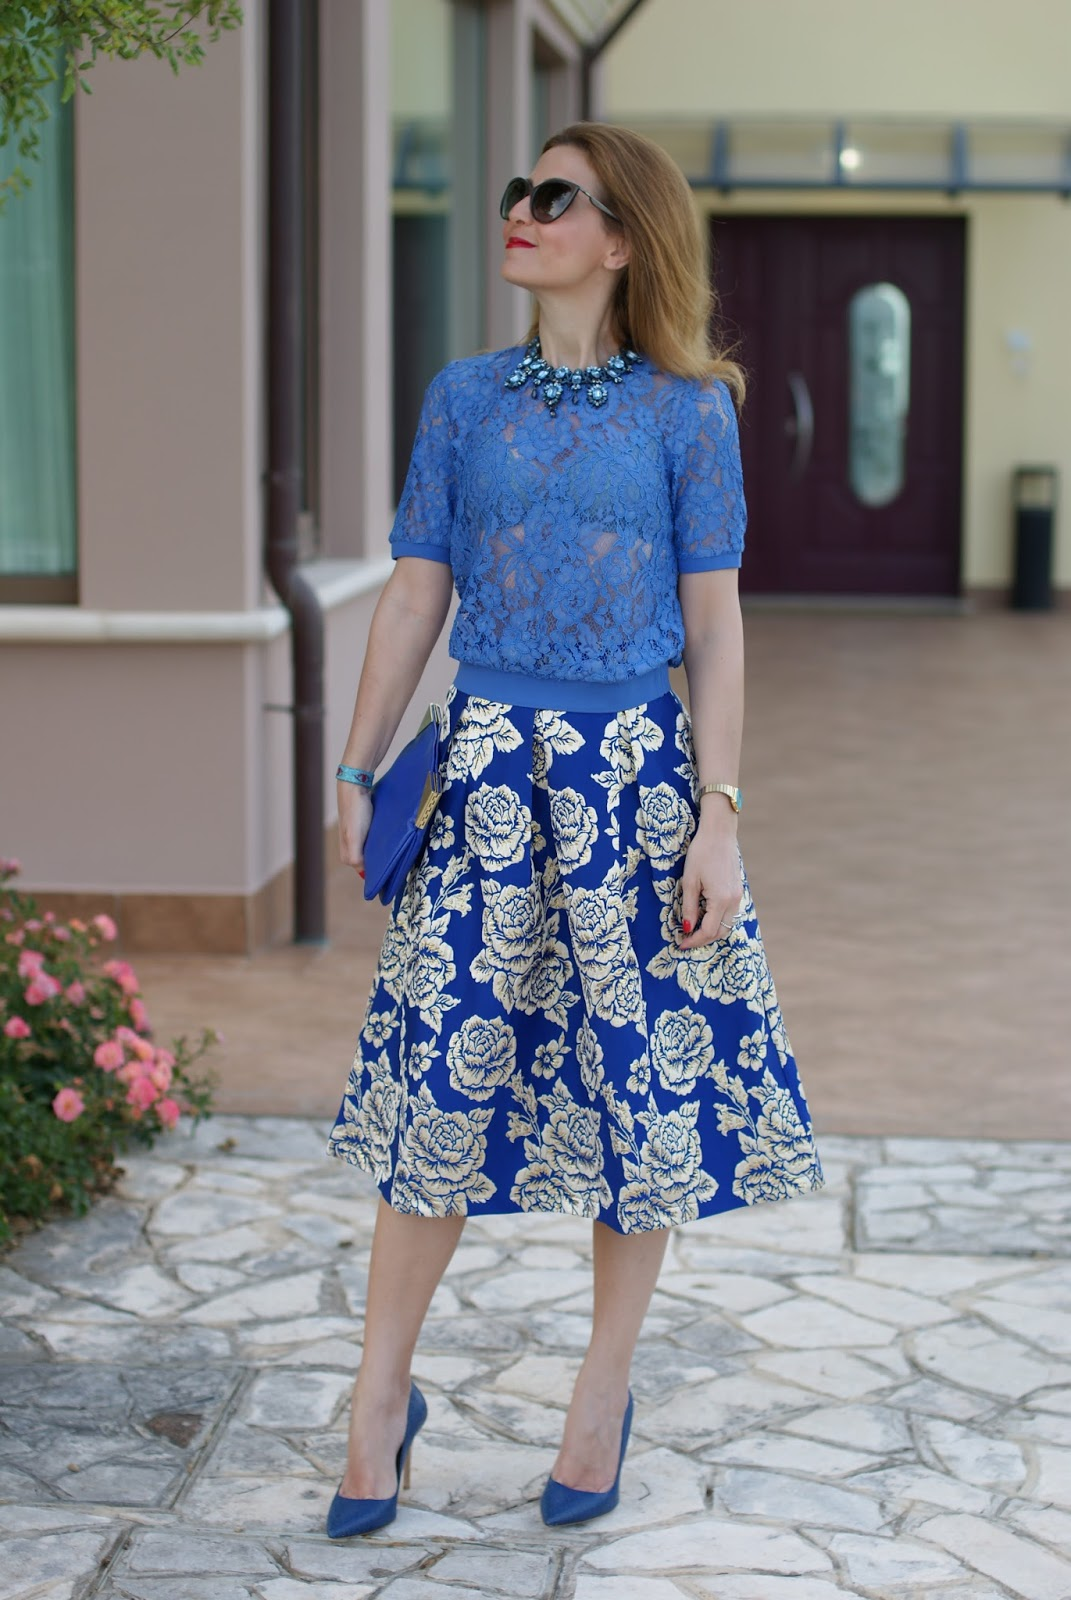 Jacquard midi skirt and Yumi see through lace t-shirt on Fashion and Cookies fashion blog, fashion blogger style